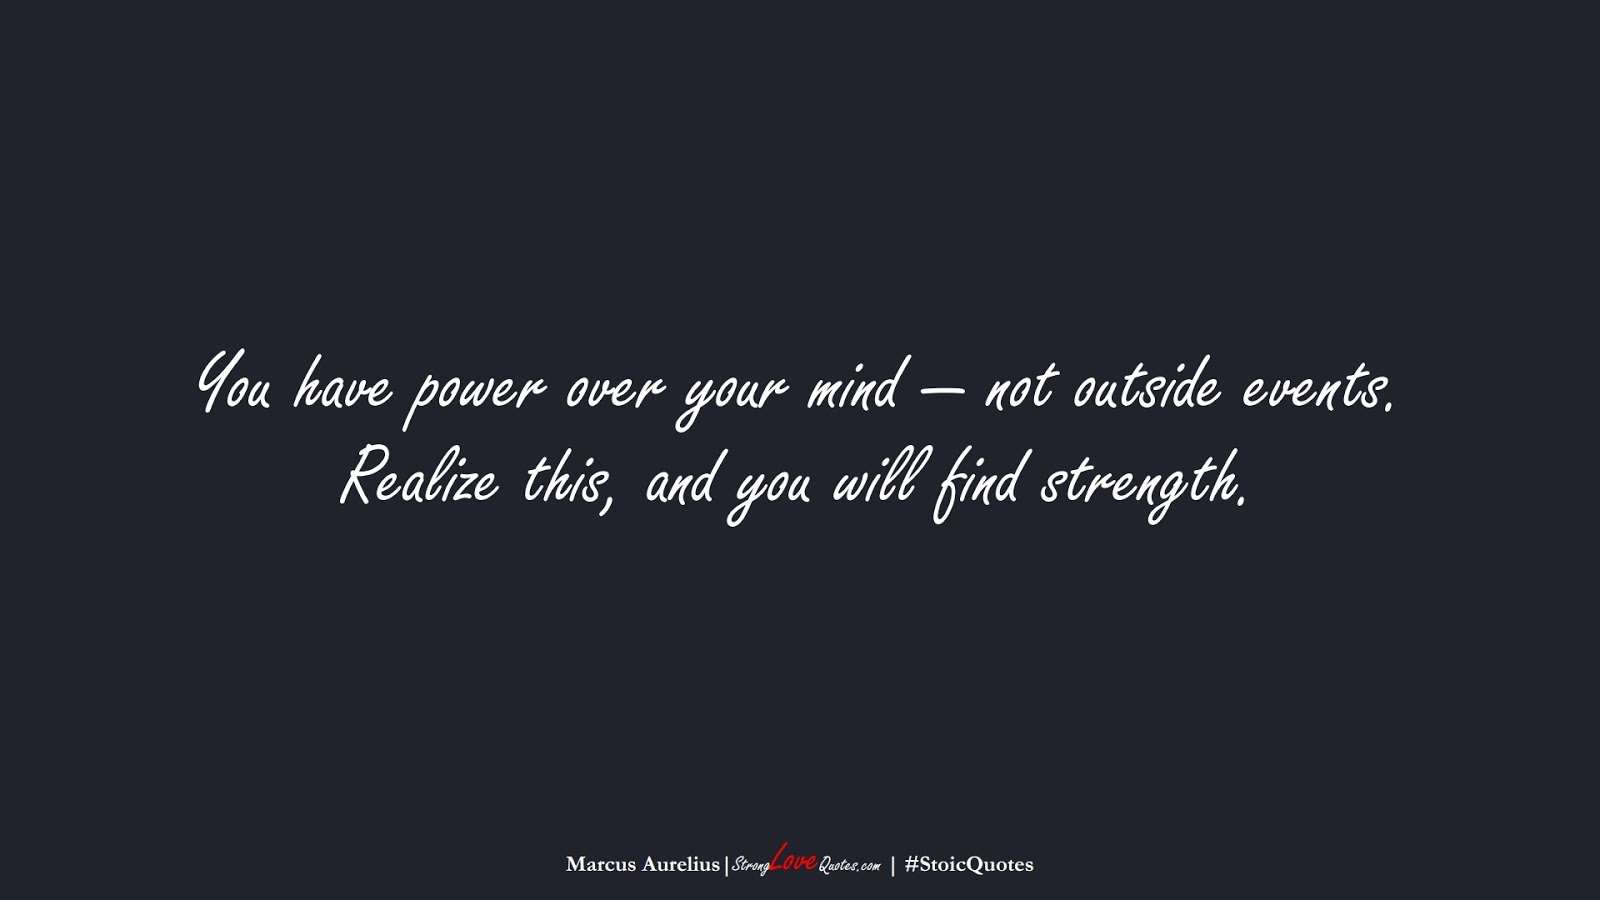 You have power over your mind — not outside events. Realize this, and you will find strength. (Marcus Aurelius);  #StoicQuotes